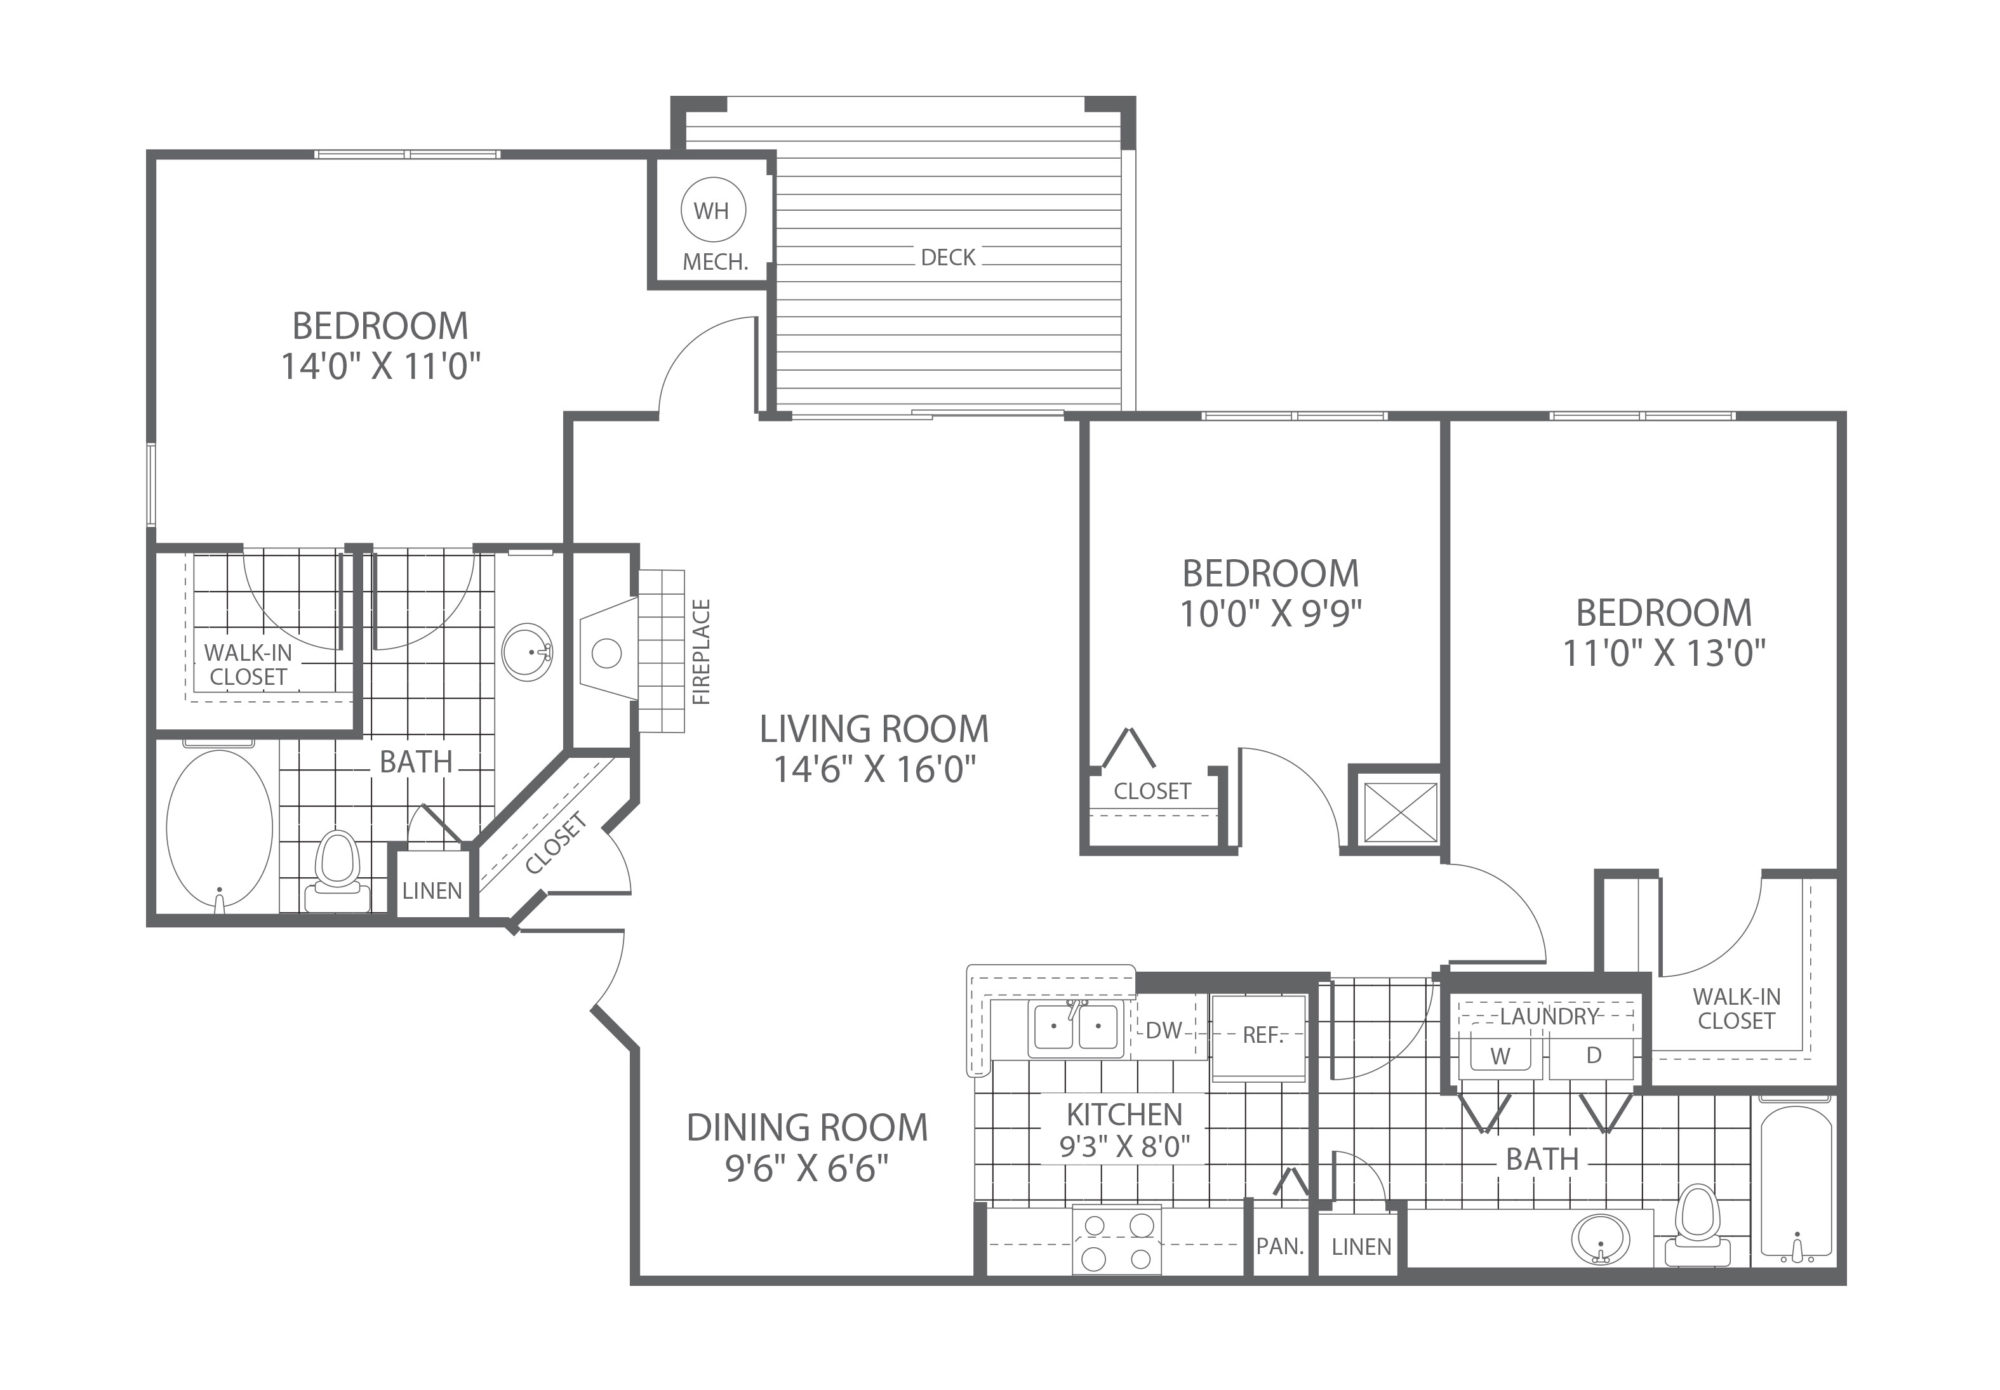 3 Bedroom/2 Bath